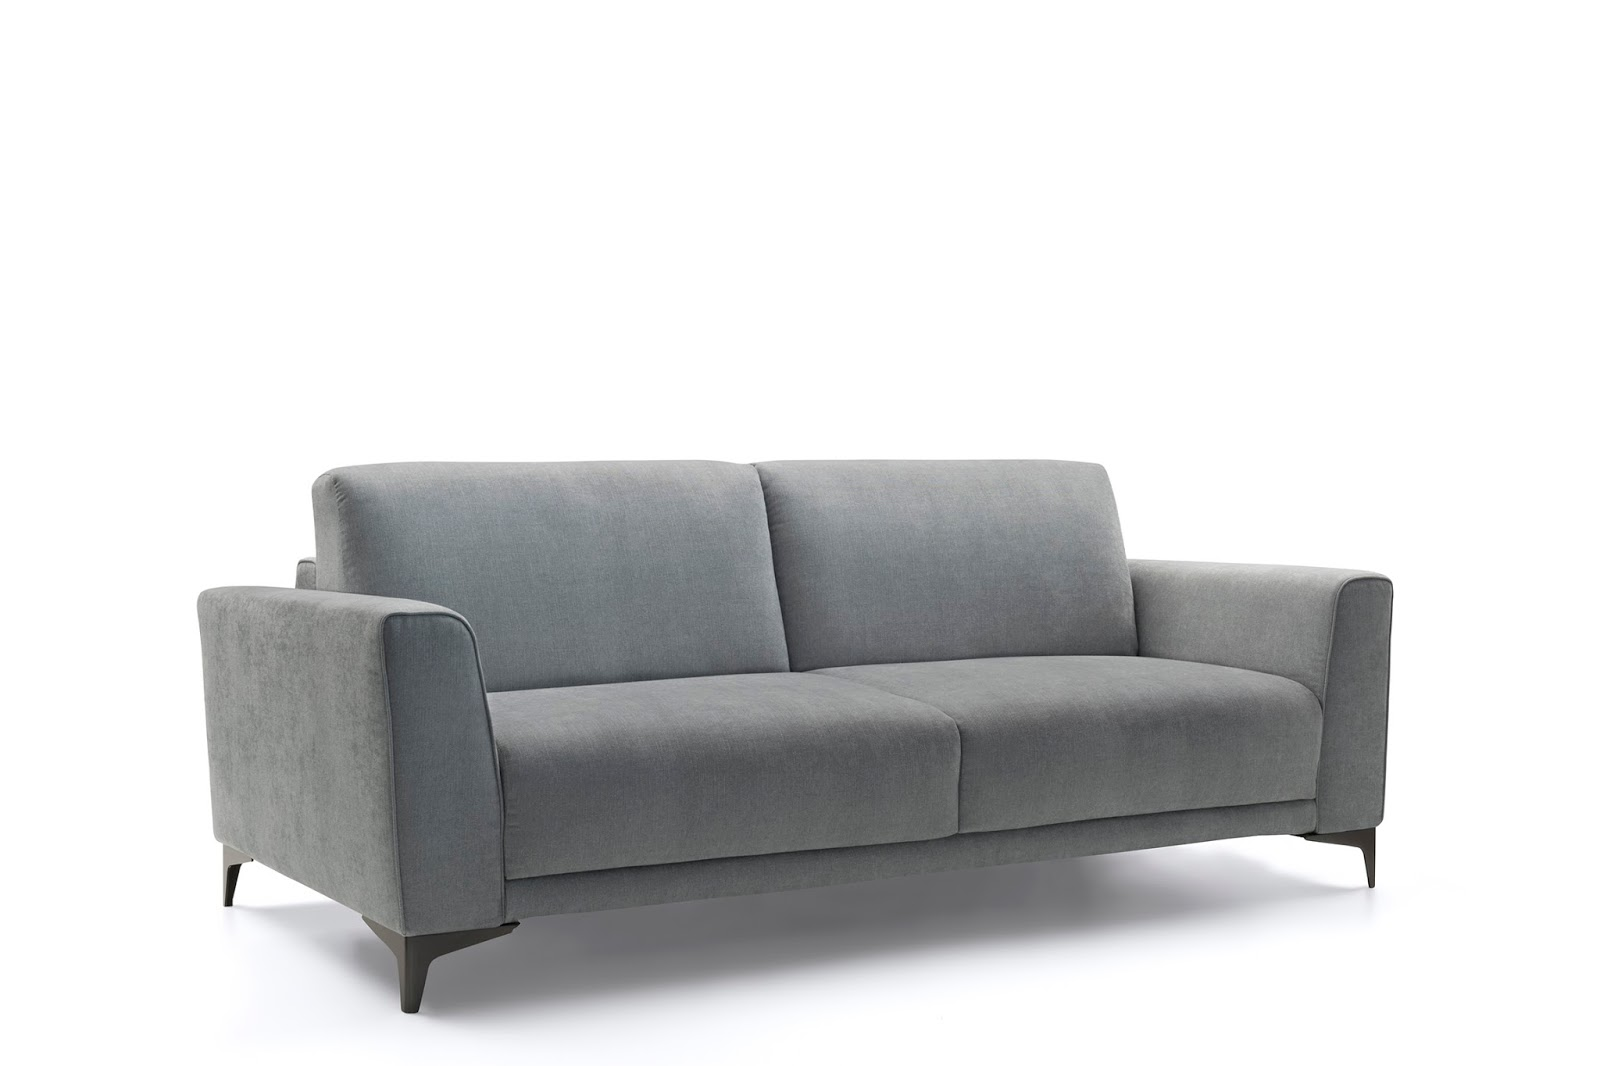 italian sofas and chairs hide a bed sofa w air mattress momentoitalia furniture blog news from the 2016